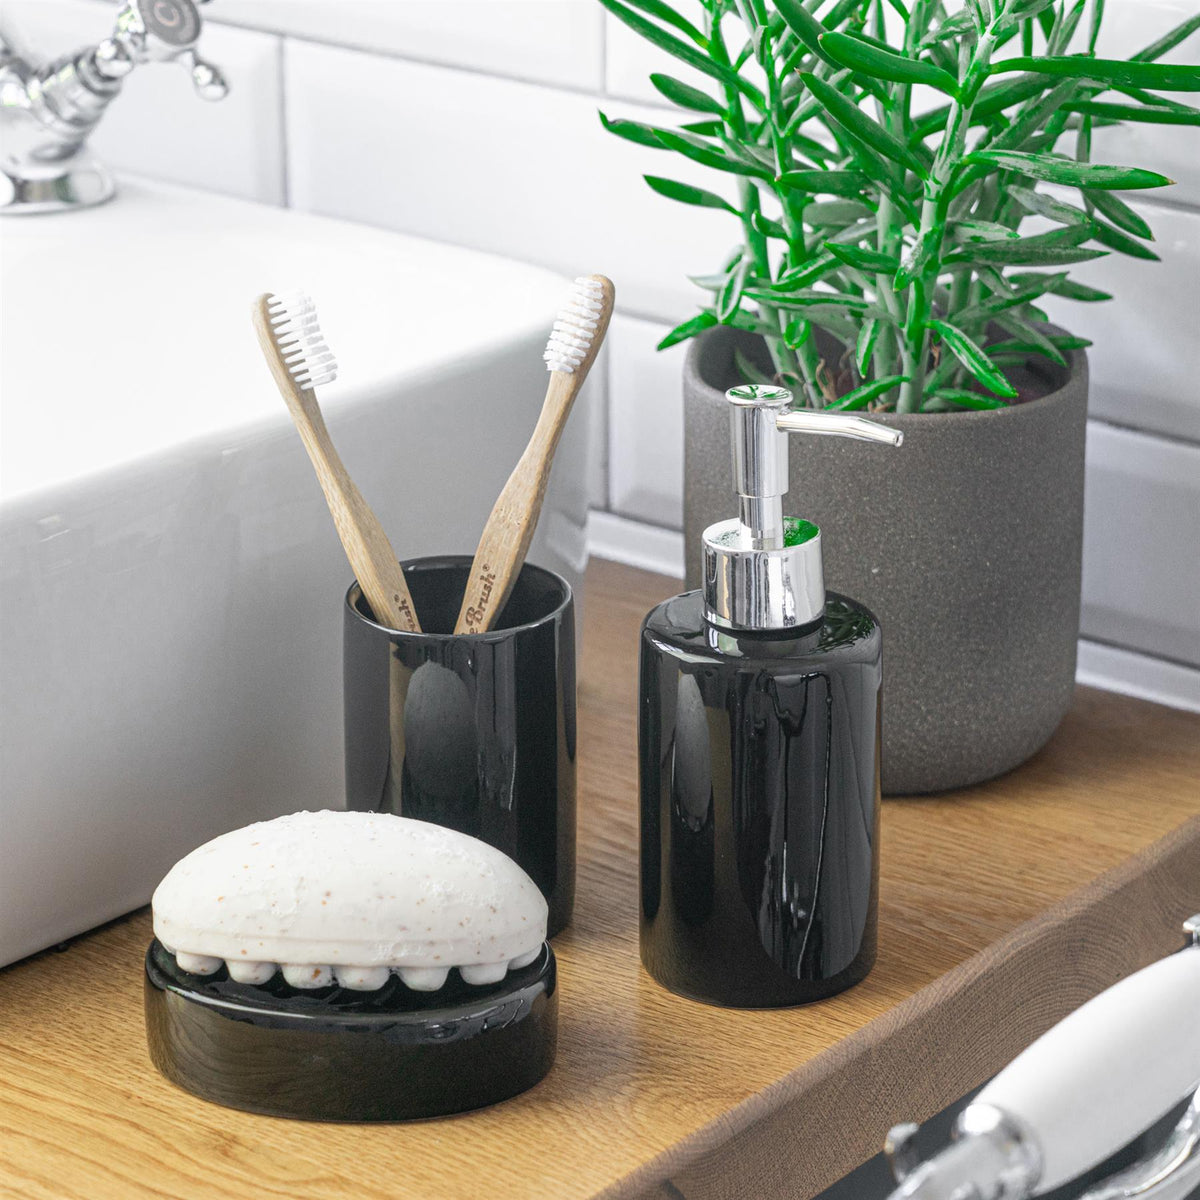 Harbour Housewares Ceramic Soap Dispenser - Black